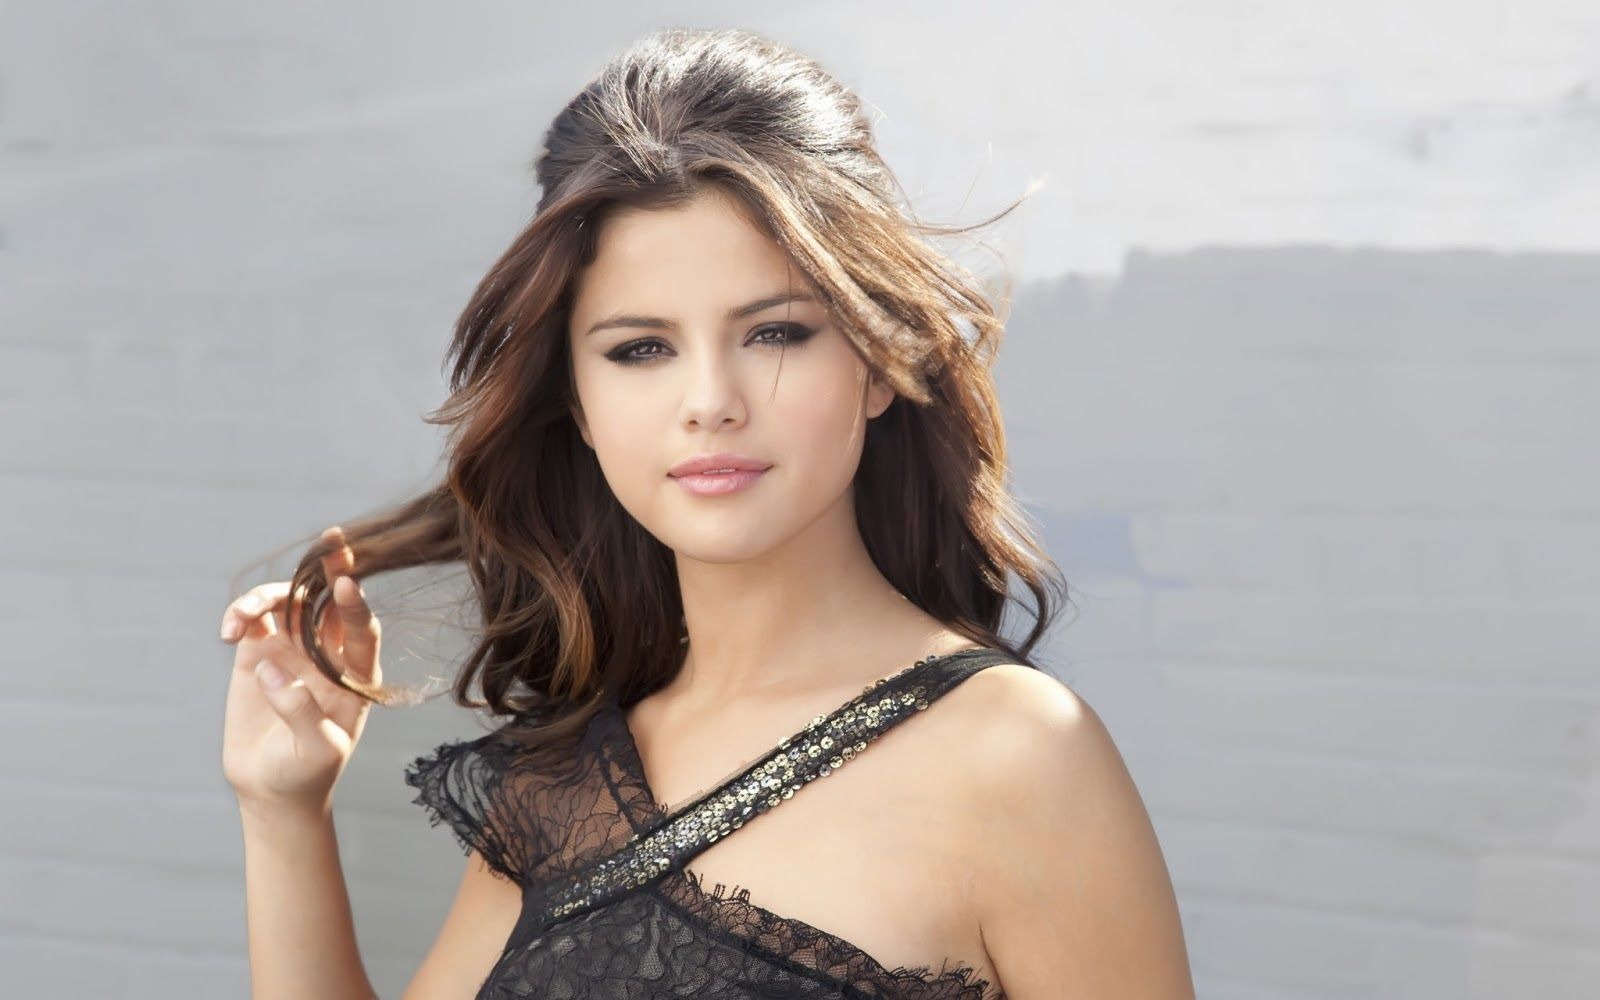 Selena gomez selena gomez wallpapers 2014 pretty hair styles selena gomez selena gomez wallpapers 2014 voltagebd Image collections